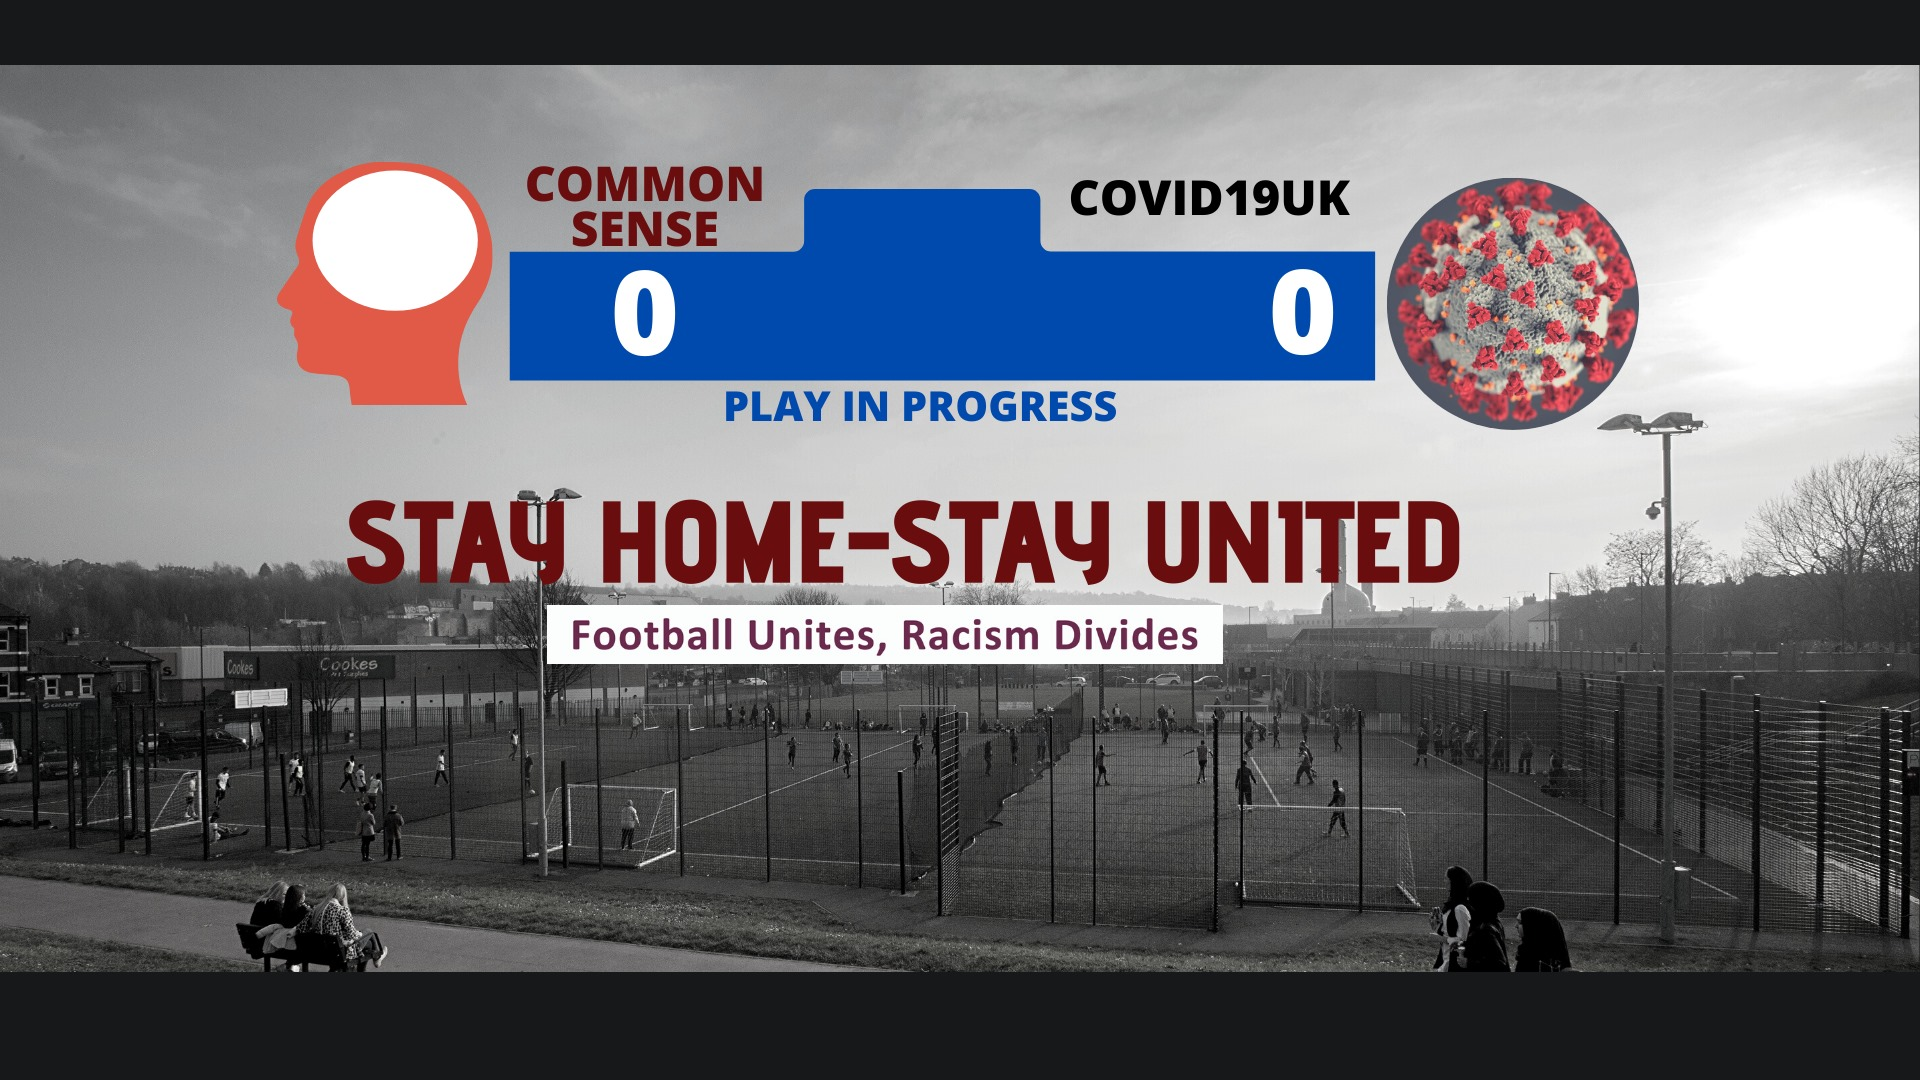 Common sense 0 Covid19 0 - Stay Home Stay United